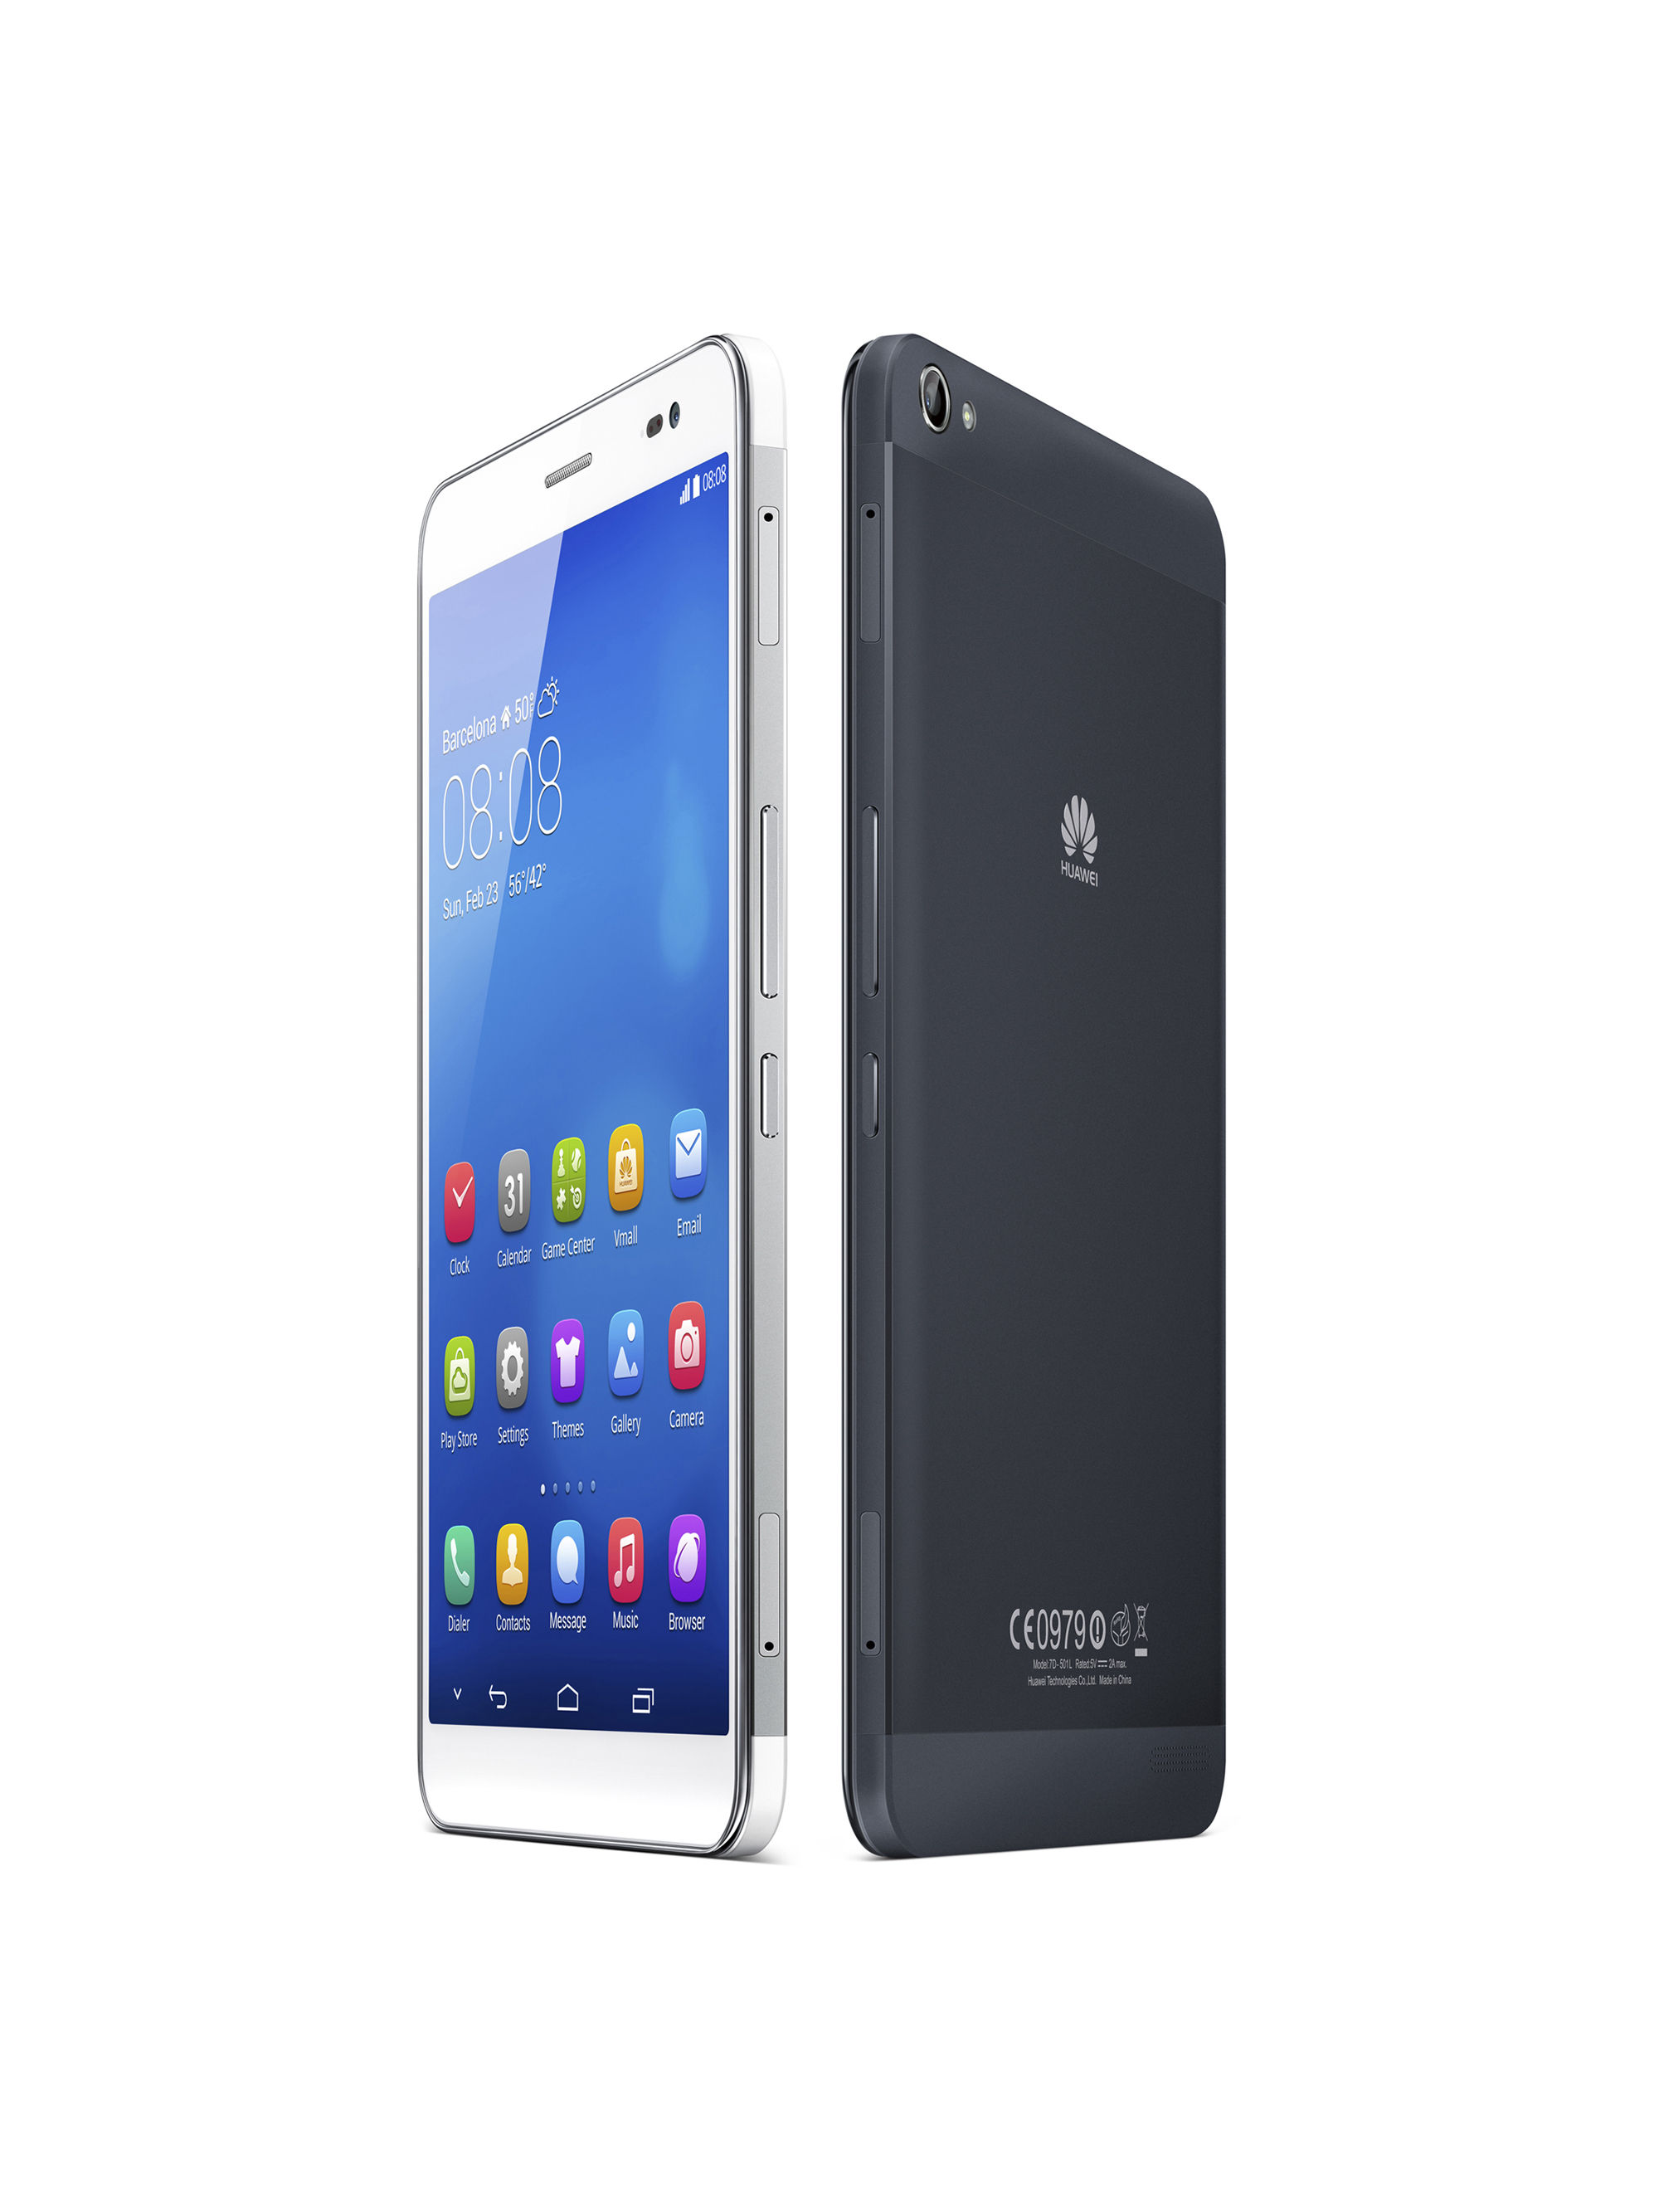 4G Mobile Broadband: Huawei Release 5 New Products in MWC